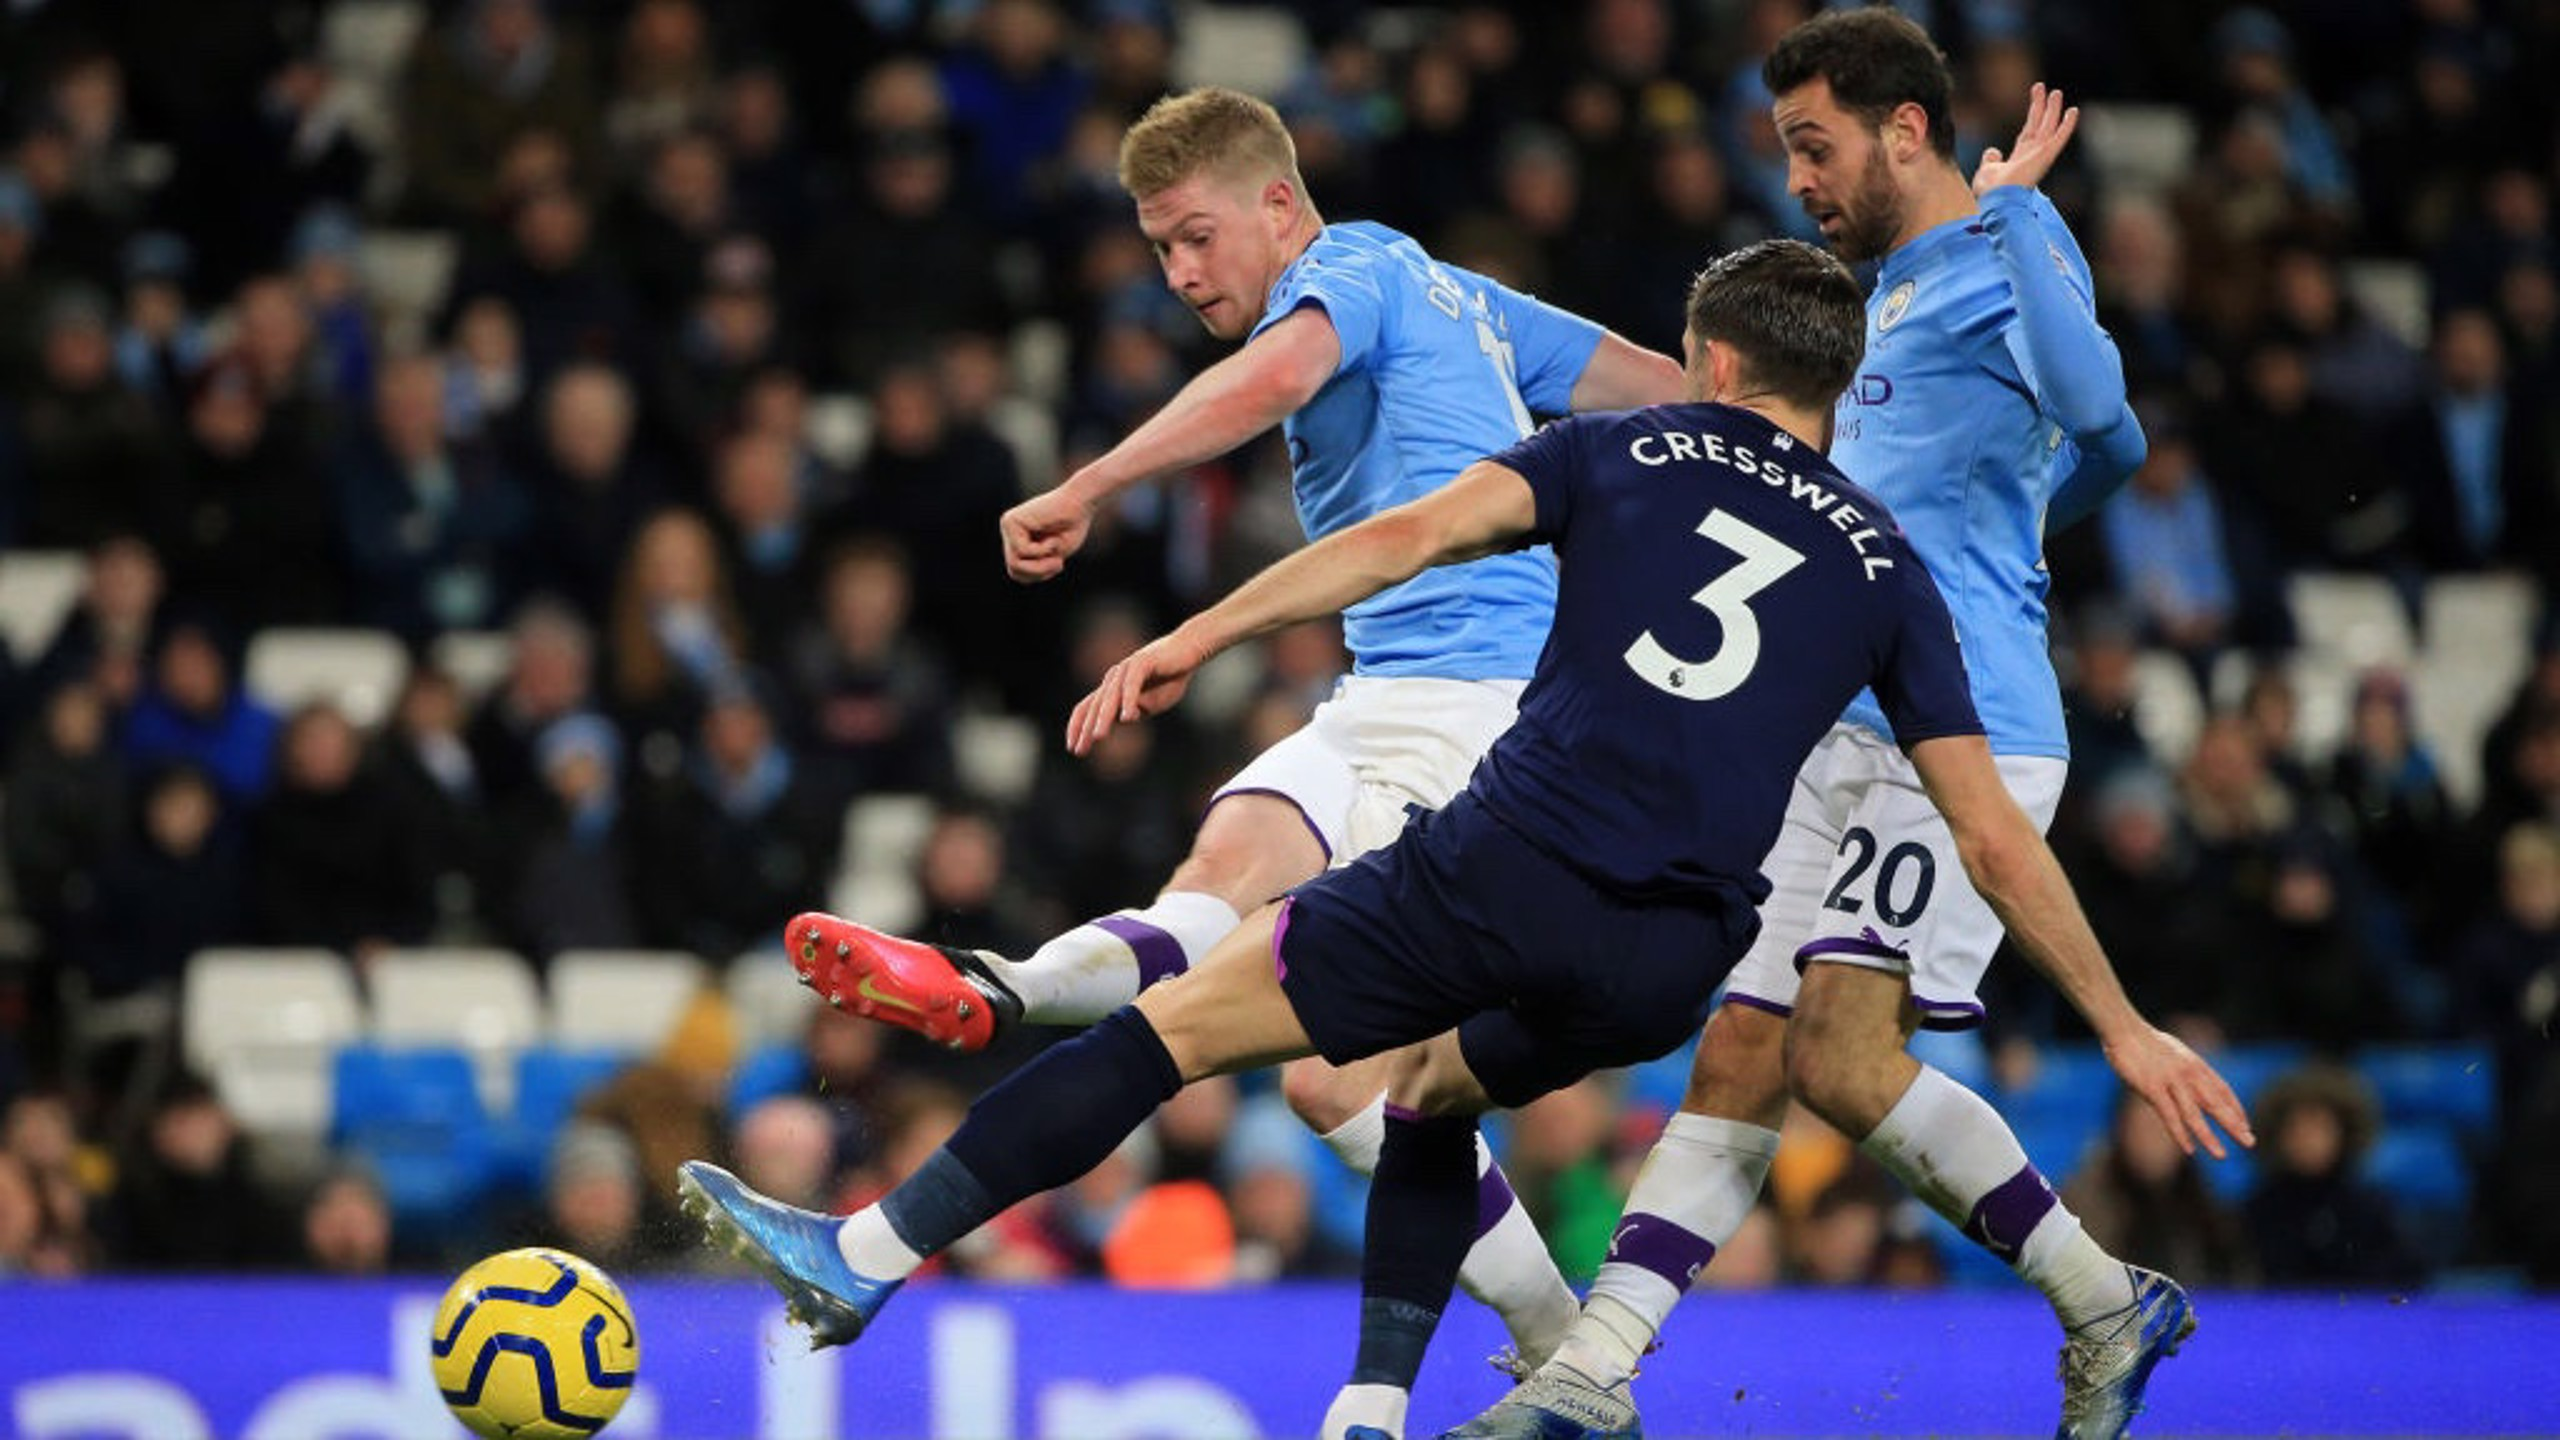 Gallery: City return from break with a win!